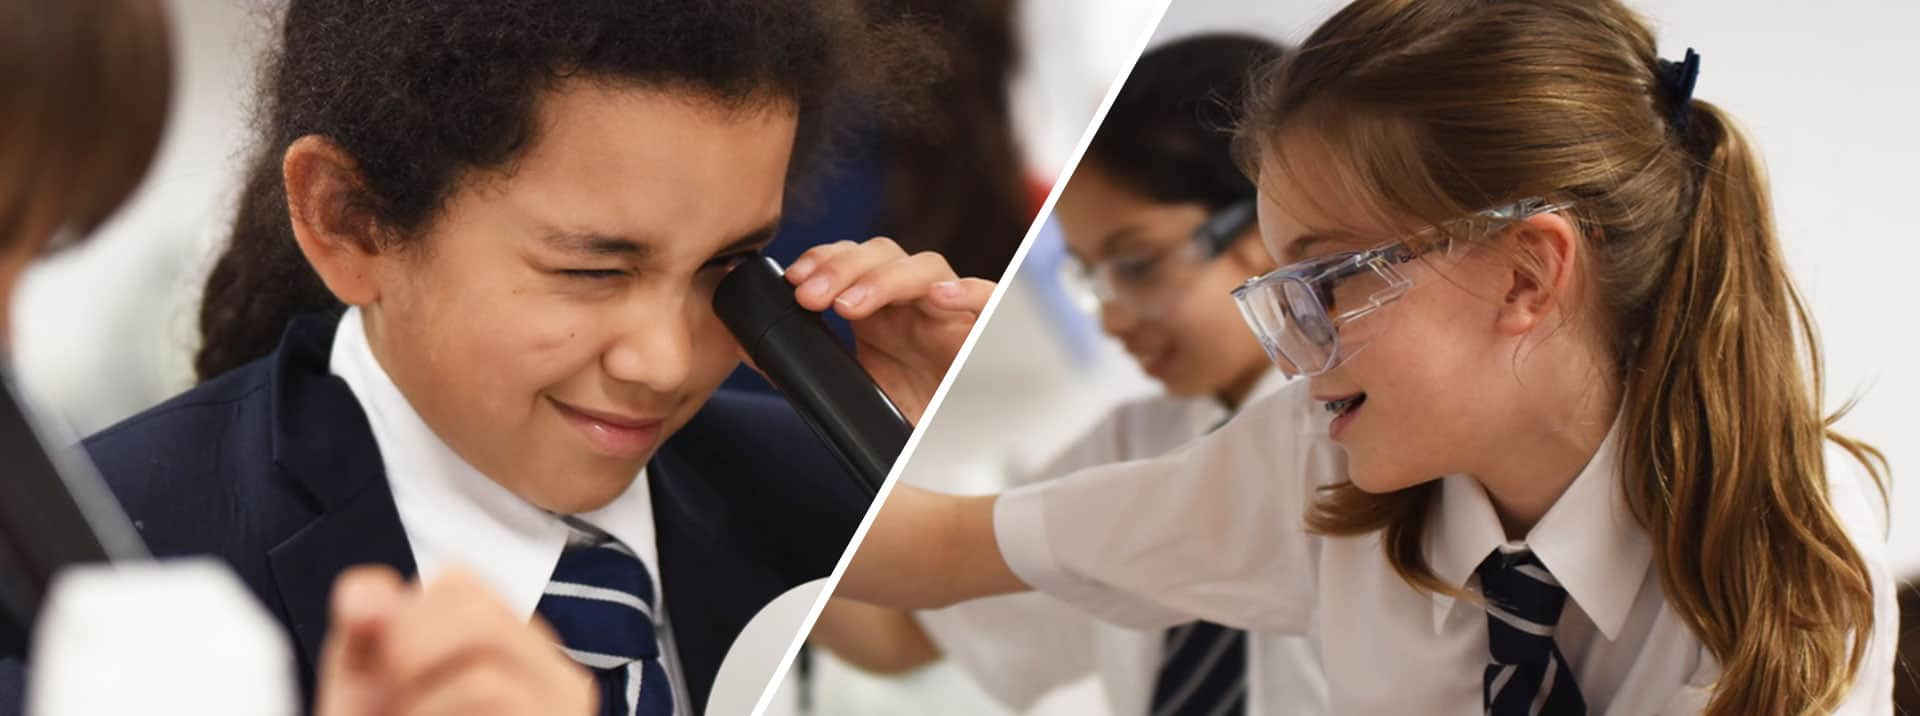 Preparing young scientists for STEM careers